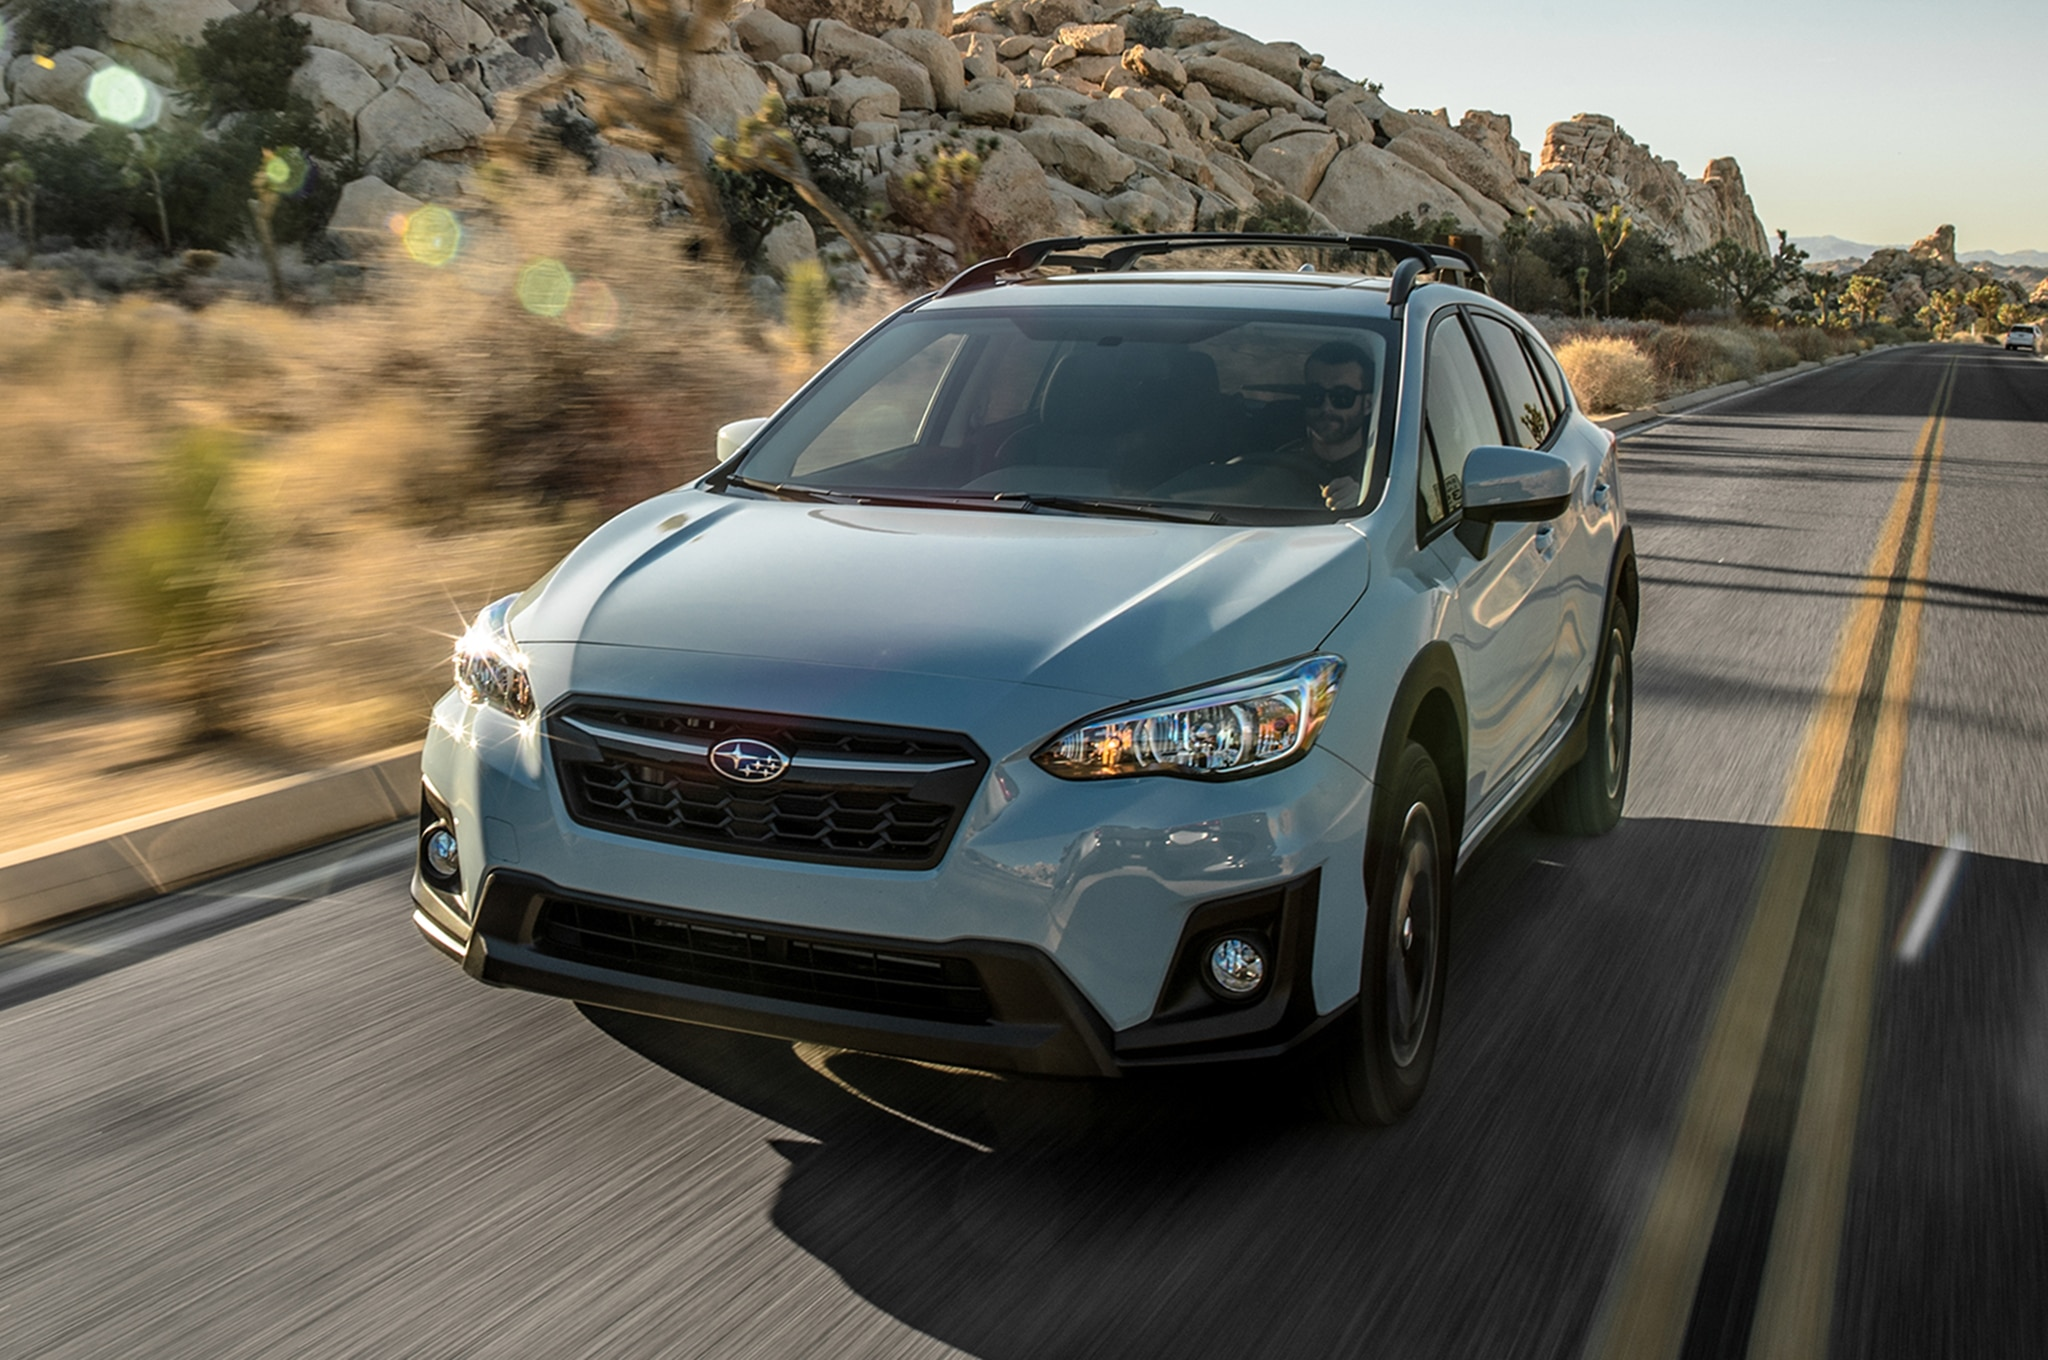 2018 Subaru Crosstrek 2 0i Premium Front Three Quarter In Motion 11